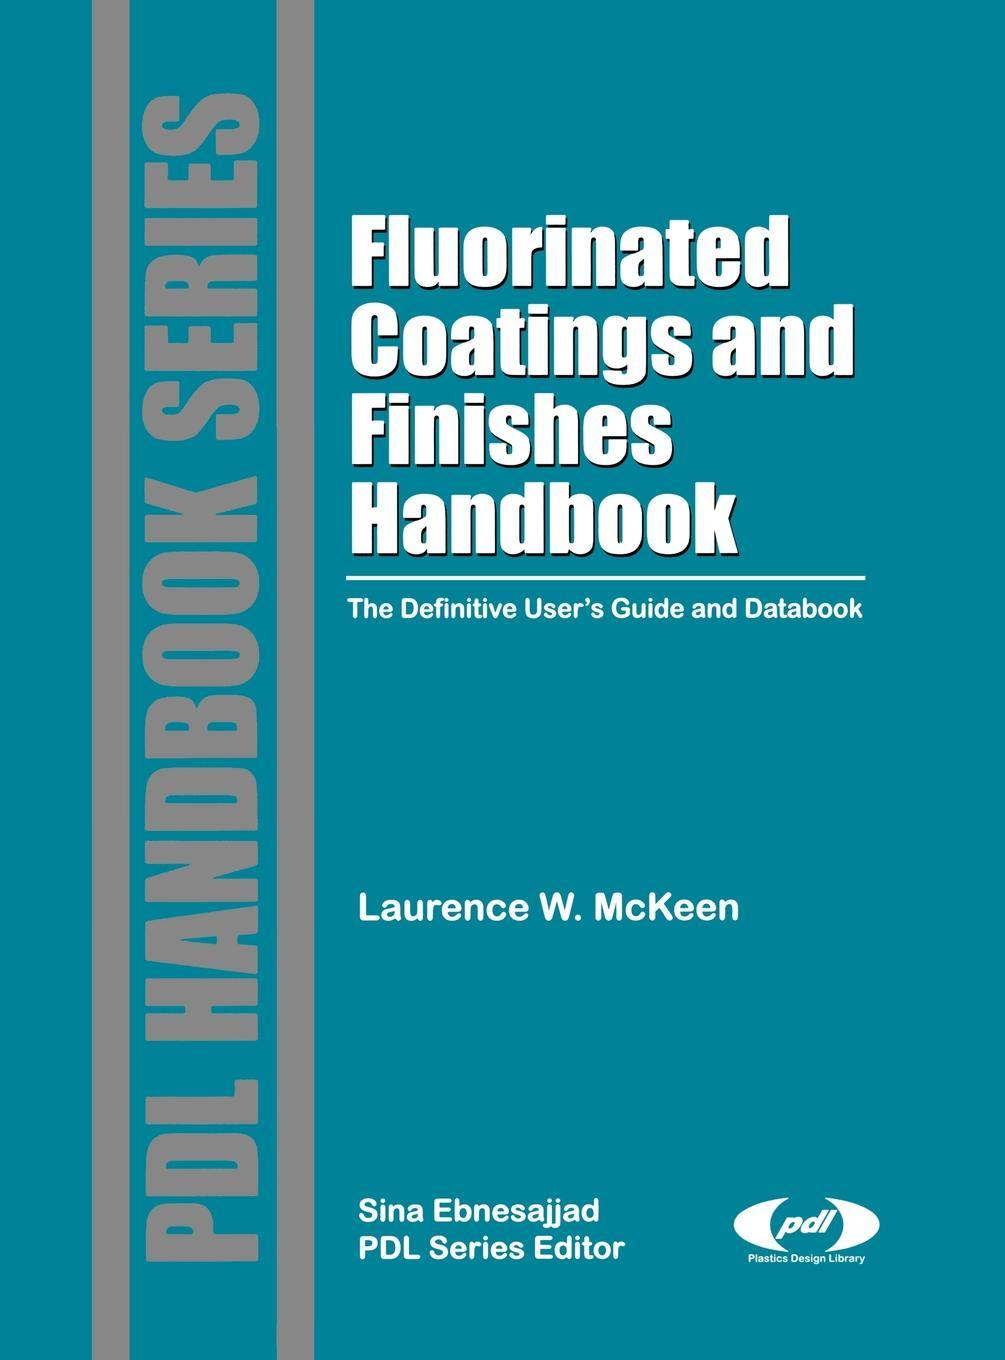 Fluorinated Coatings and Finishes Handbook: The Definitive User's Guide and Databook By: Laurence W. McKeen